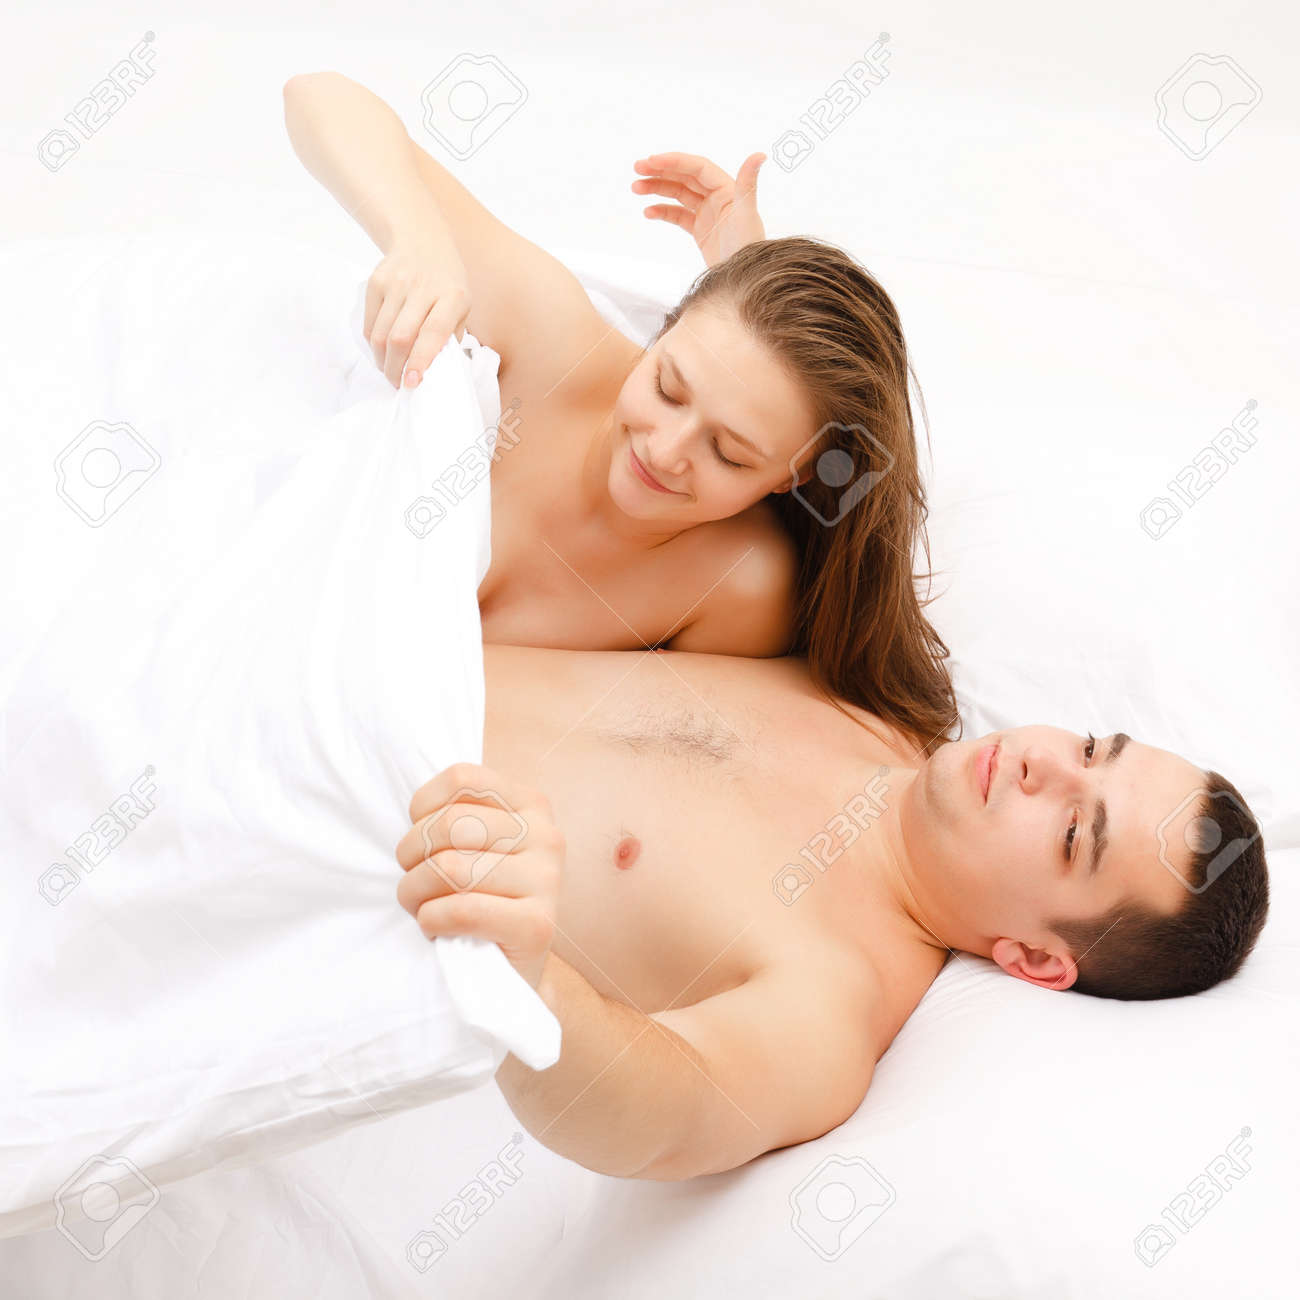 Young couple in bed, woman looking at the man's private part Stock Photo - 8922831